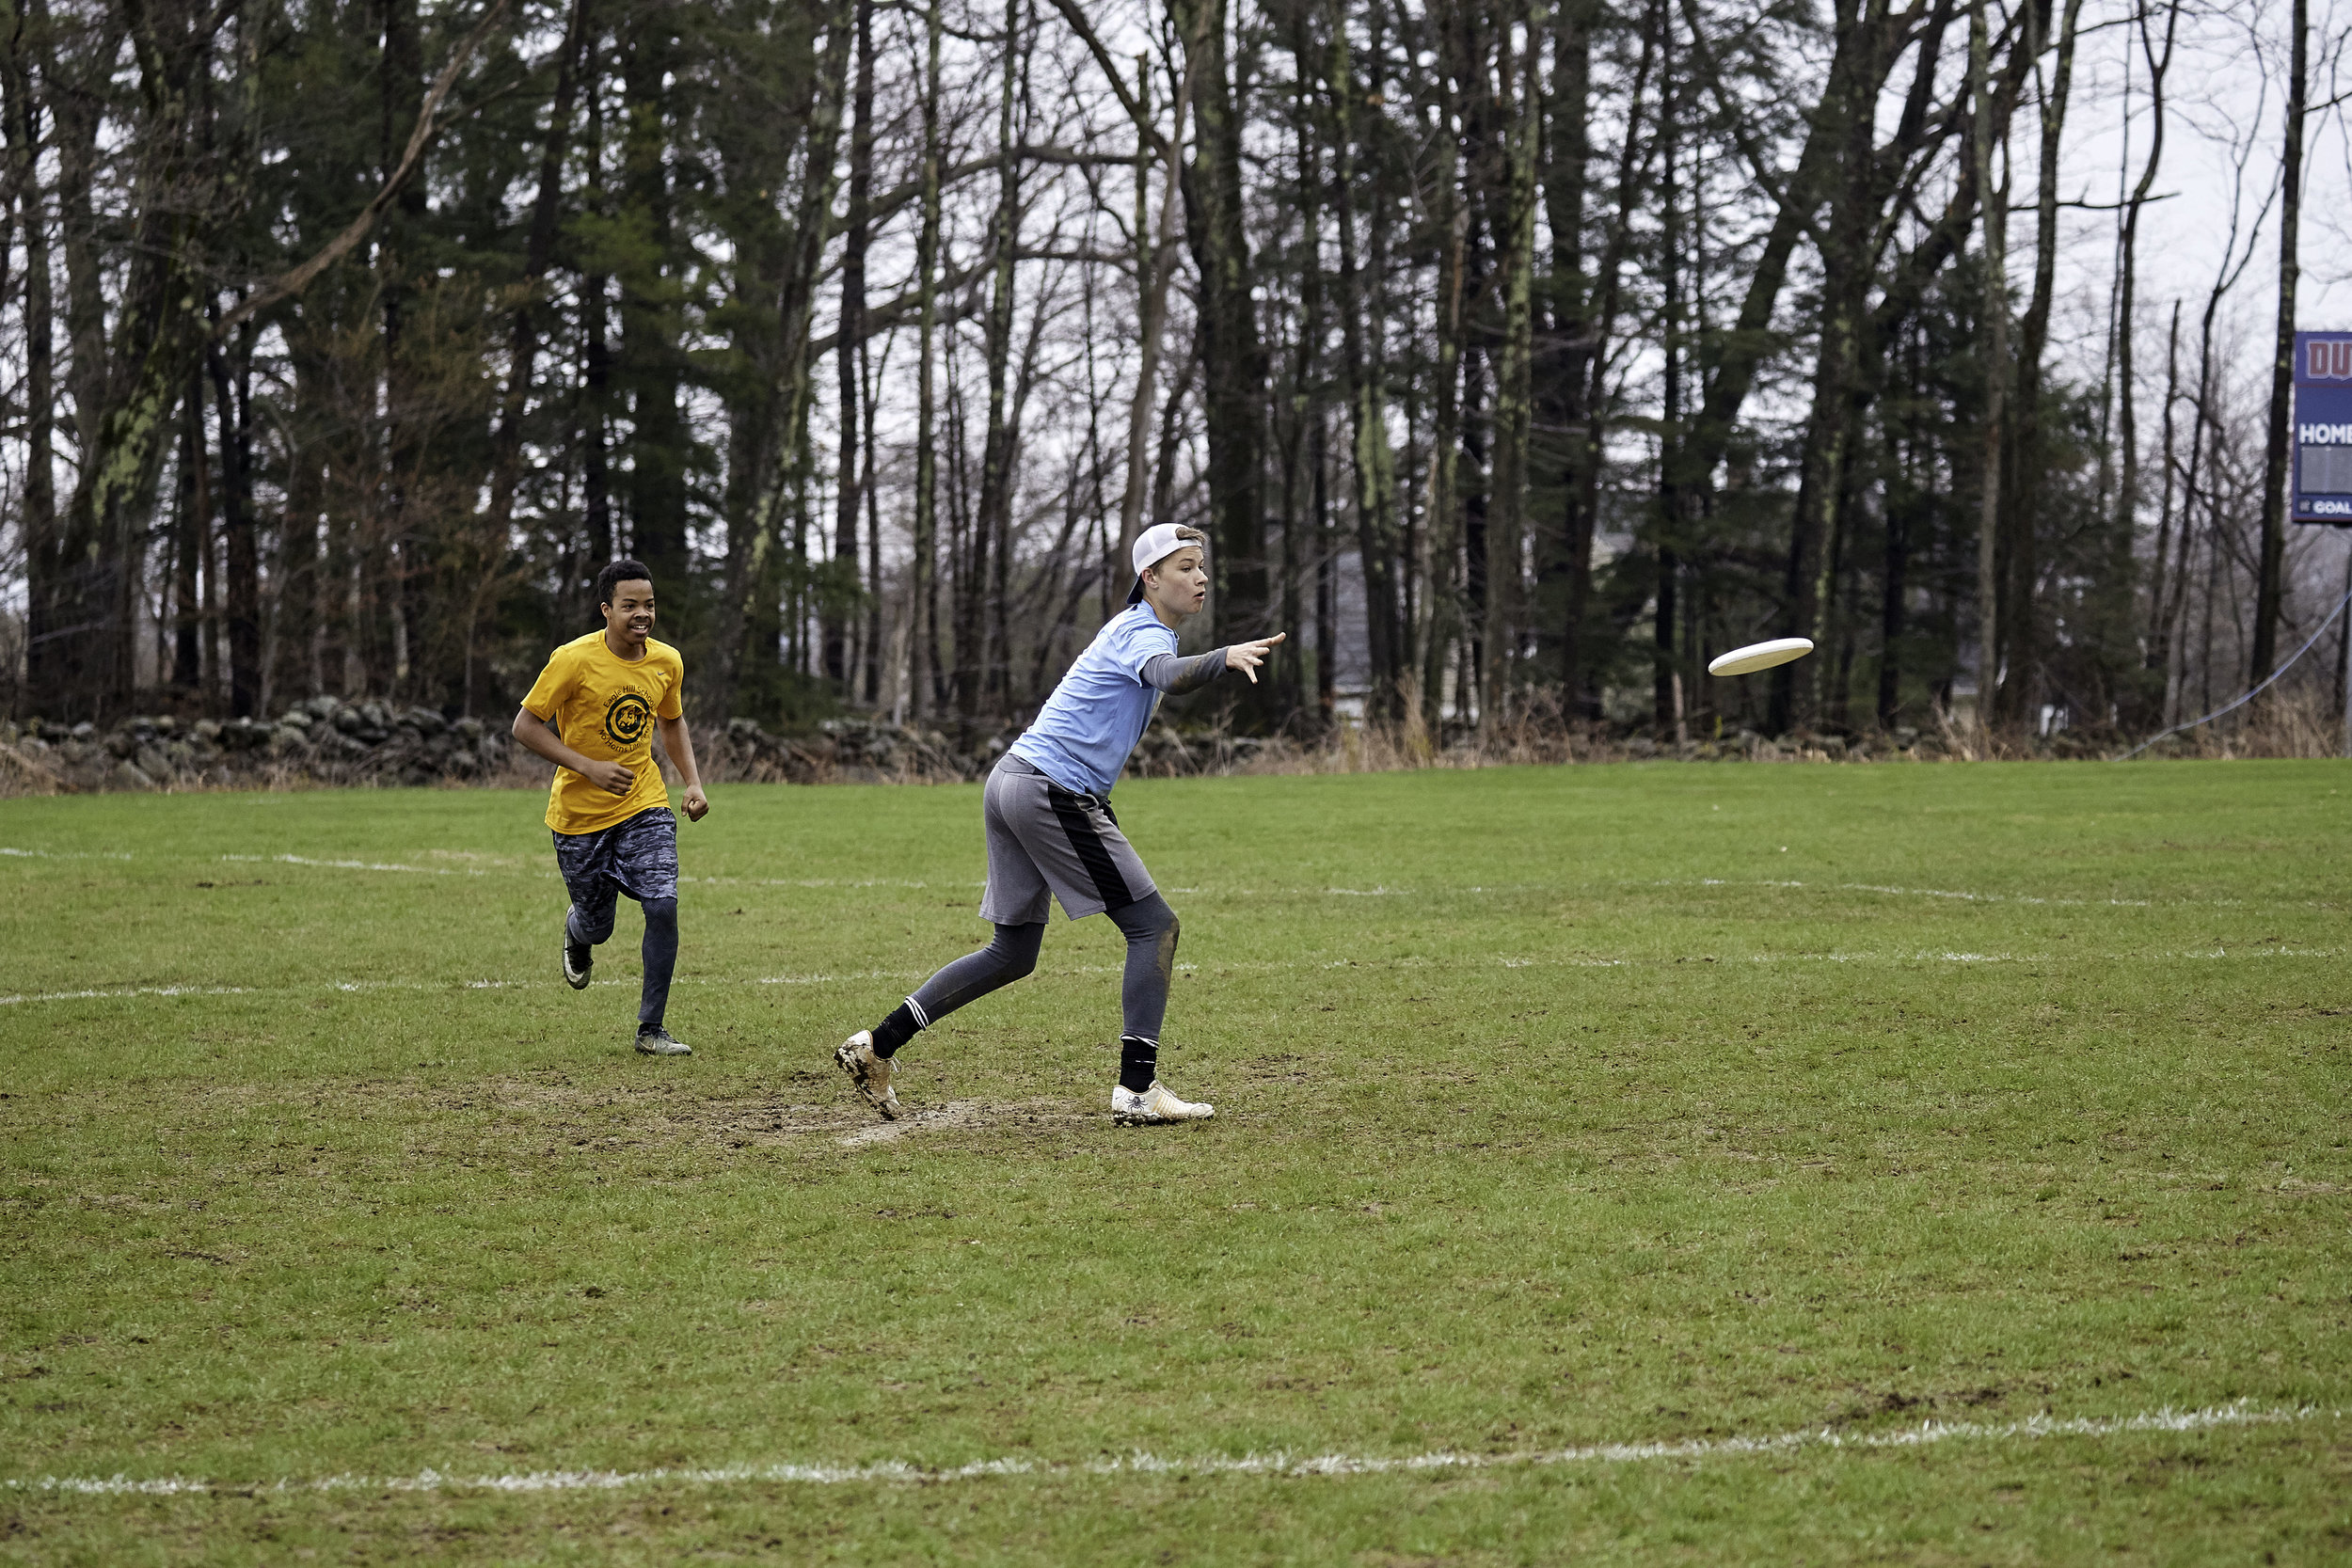 Ultimate Frisbee vs. Eagle Hill School - May 3, 2019 - 188699.jpg